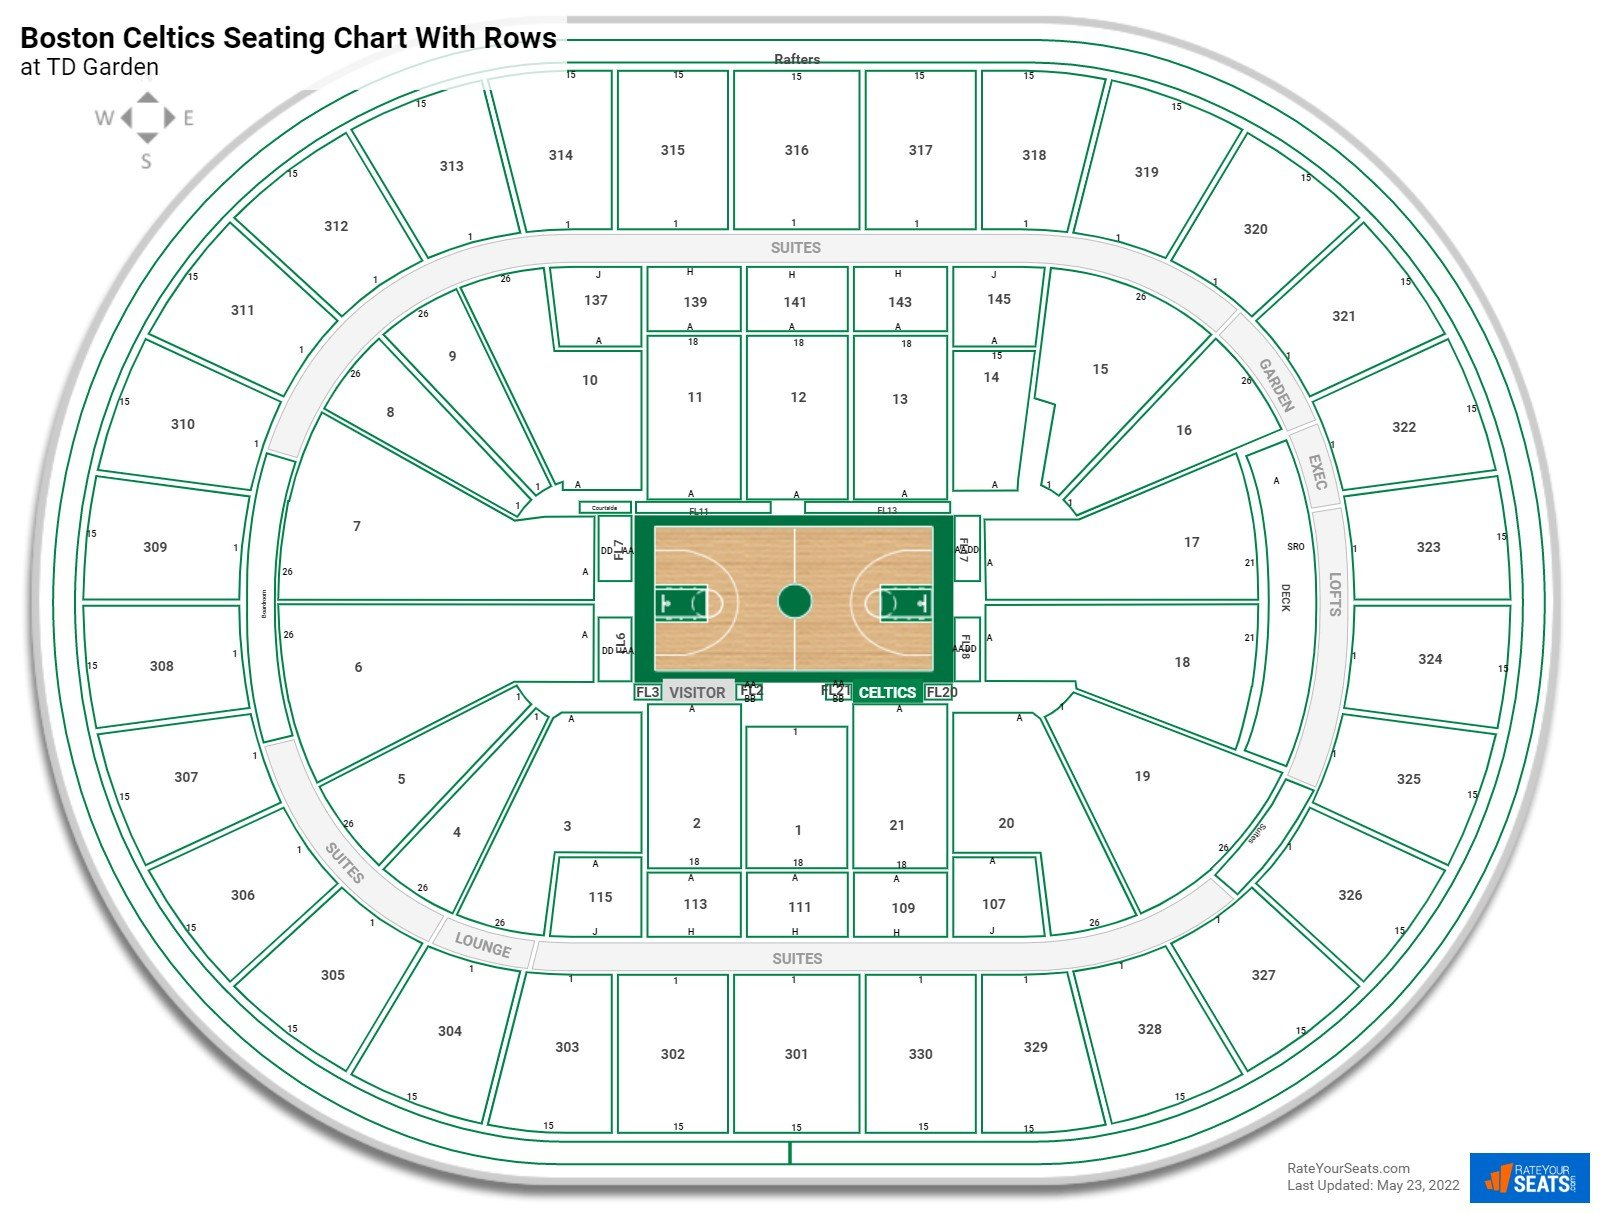 TD Garden seating chart with rows basketball